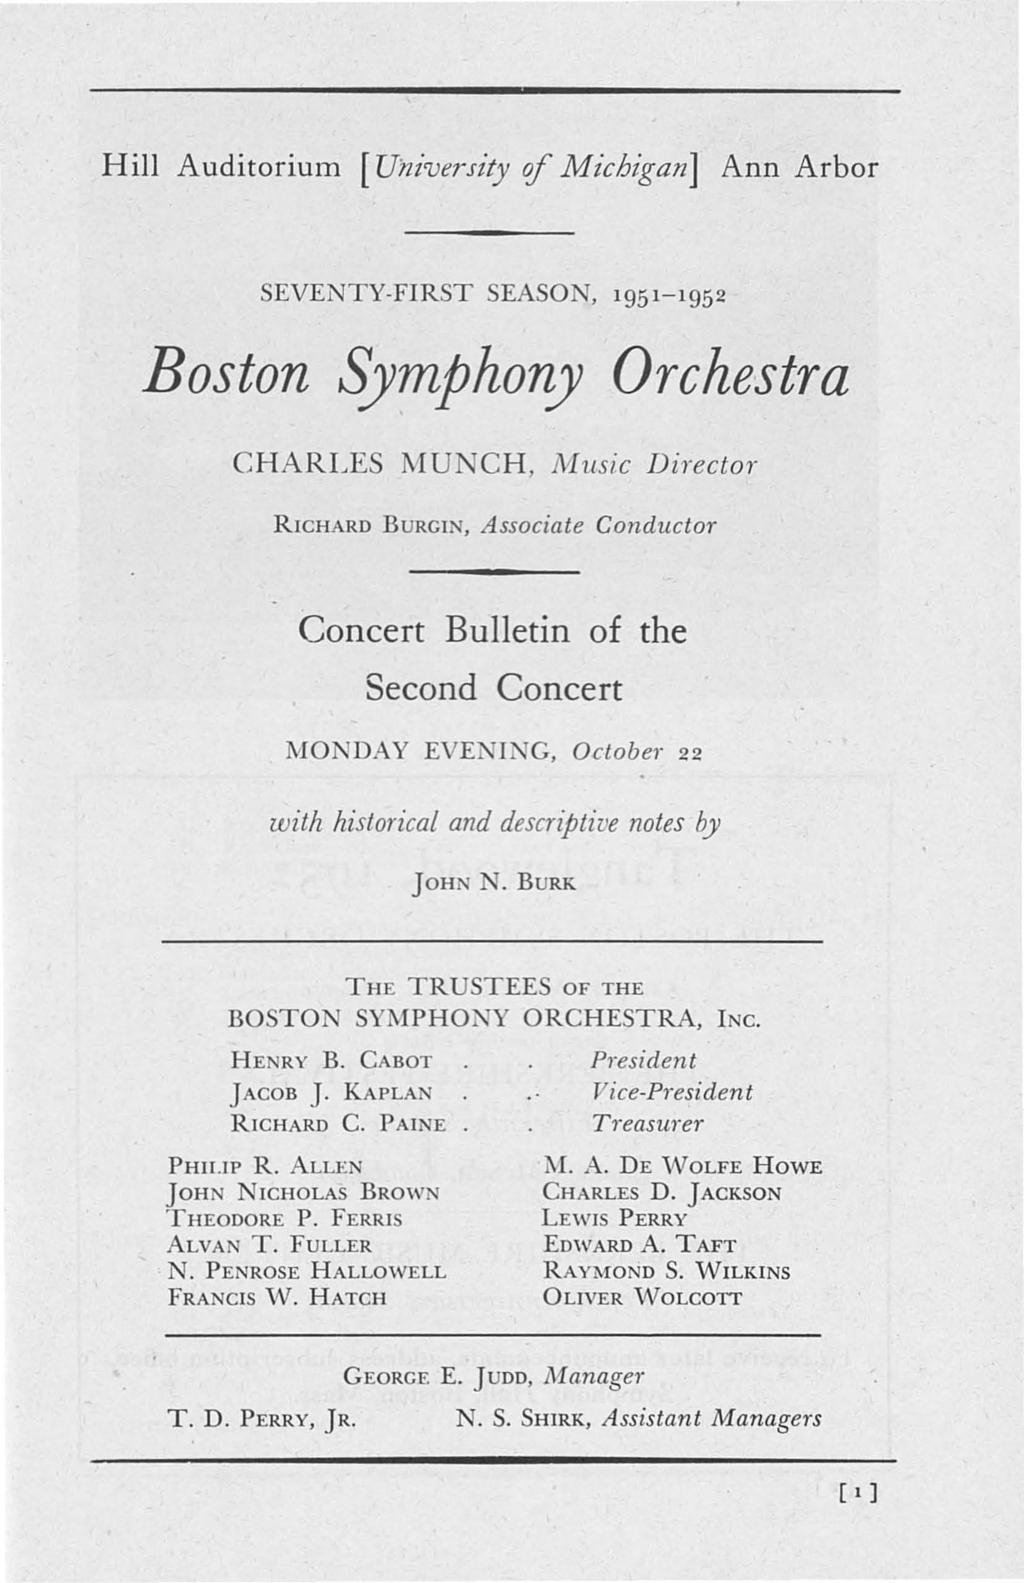 Hill Auditorium [University of Michigan] Ann Arbor SEVENTY-FIRST SEASO, 1951-1952 Boston Symphony Orchestra CHARLES funch, Music Di1'ector RICHARD BURGI, Associate Conductor Concert Bulletin of the